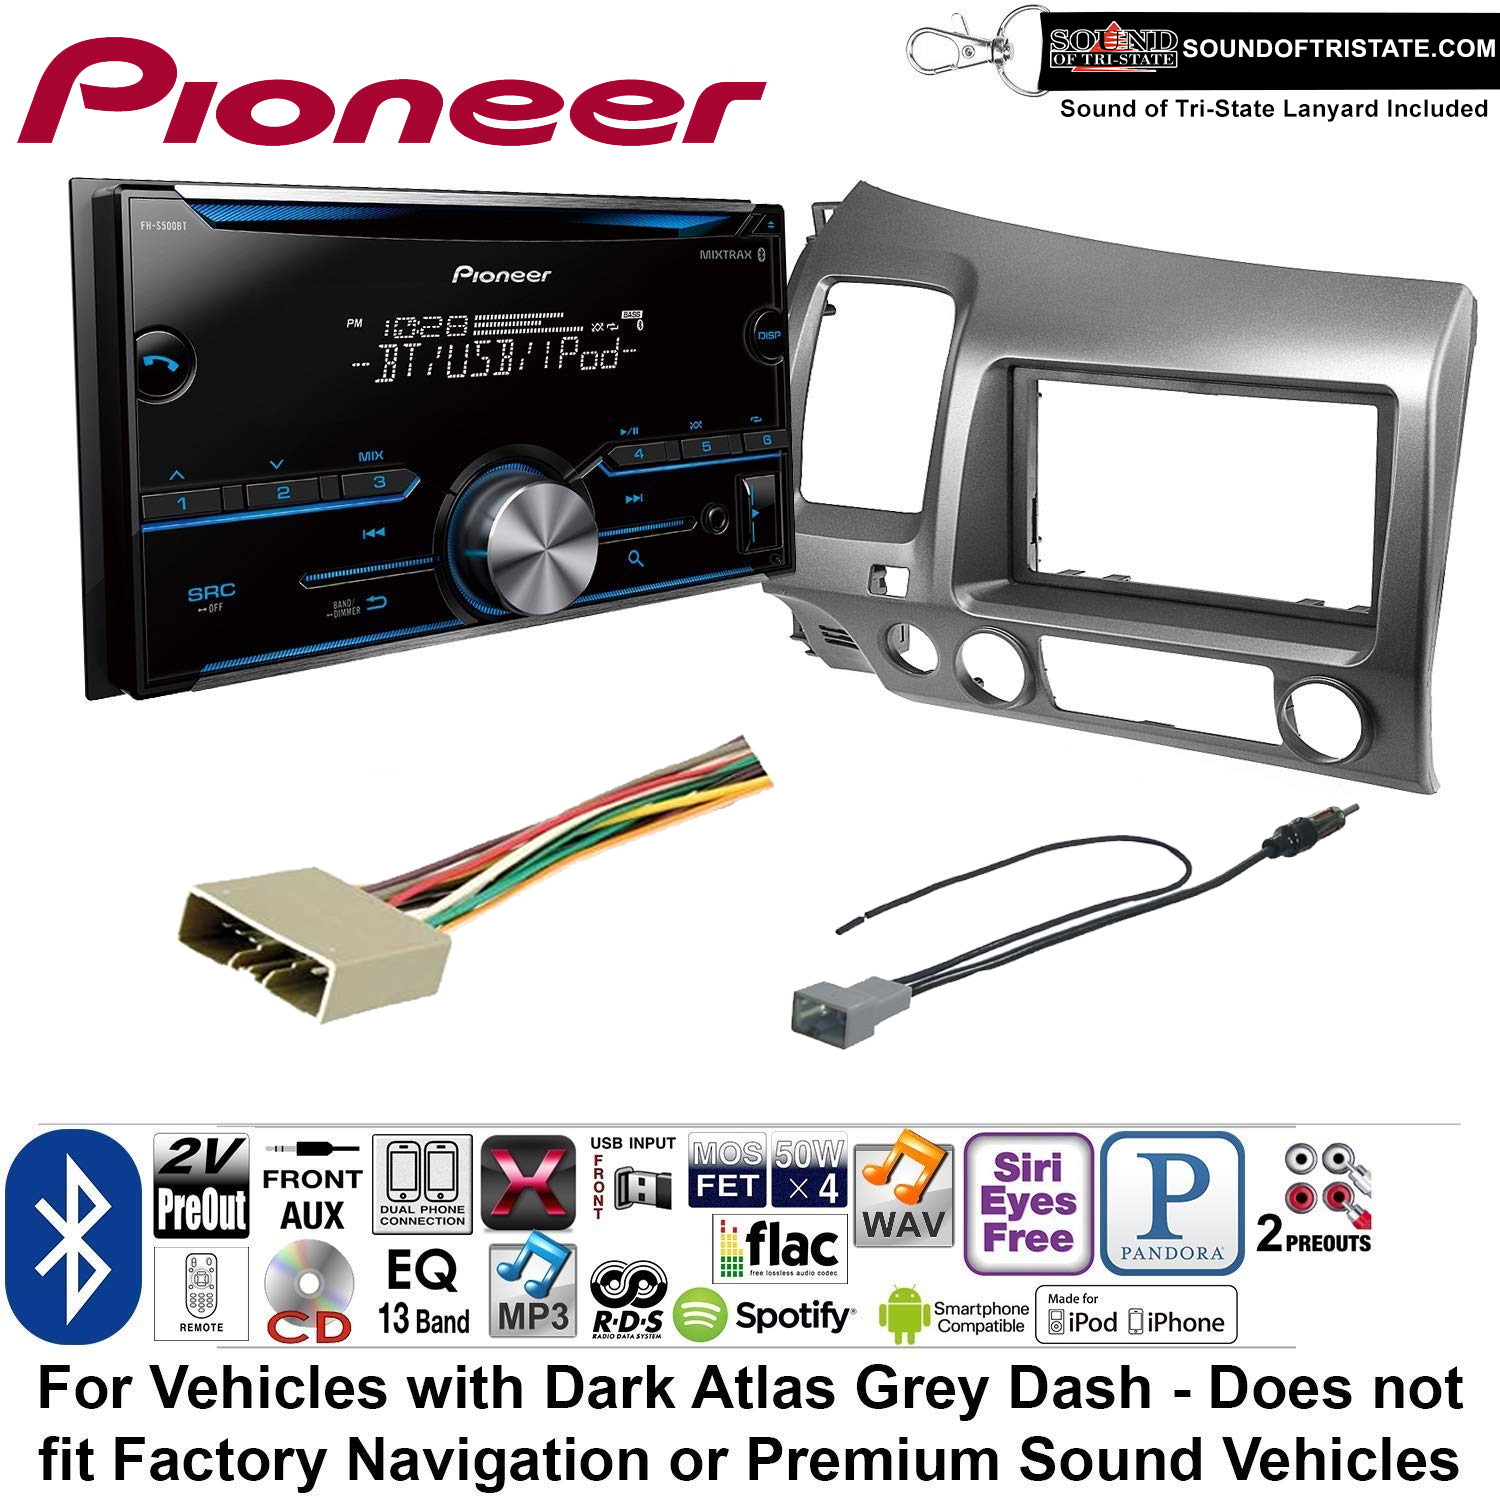 Pioneer FH-S500BT Double Din Radio Install Kit with CD Player Bluetooth Fits 2006-2011 Honda Civic (Dark Atlas Grey) + Sound of Tri-State Lanyard